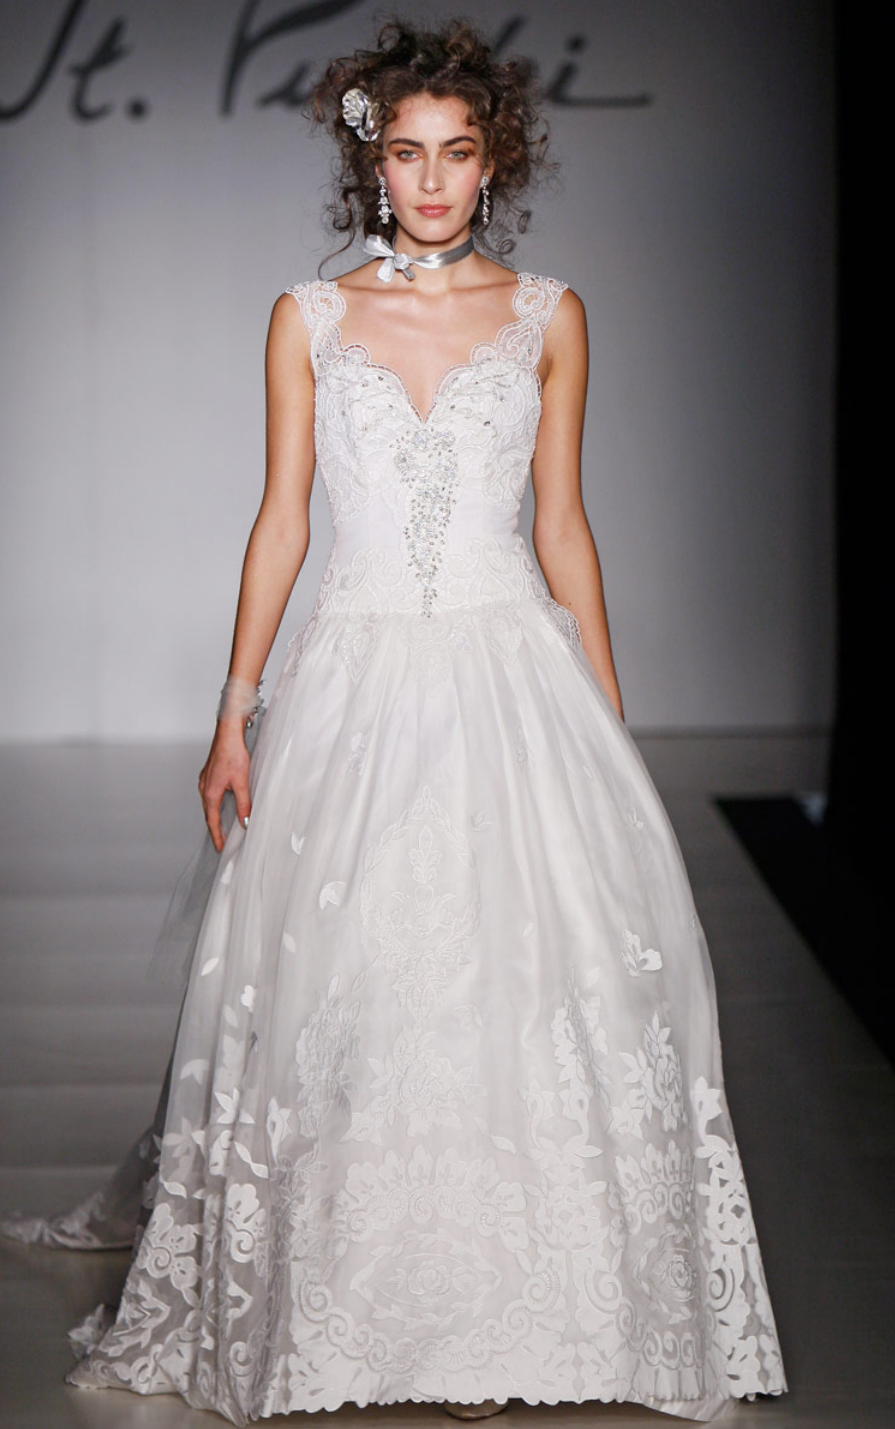 St. Pucchi Spring 2011 Bridal Couture Collection | St pucchi wedding ...